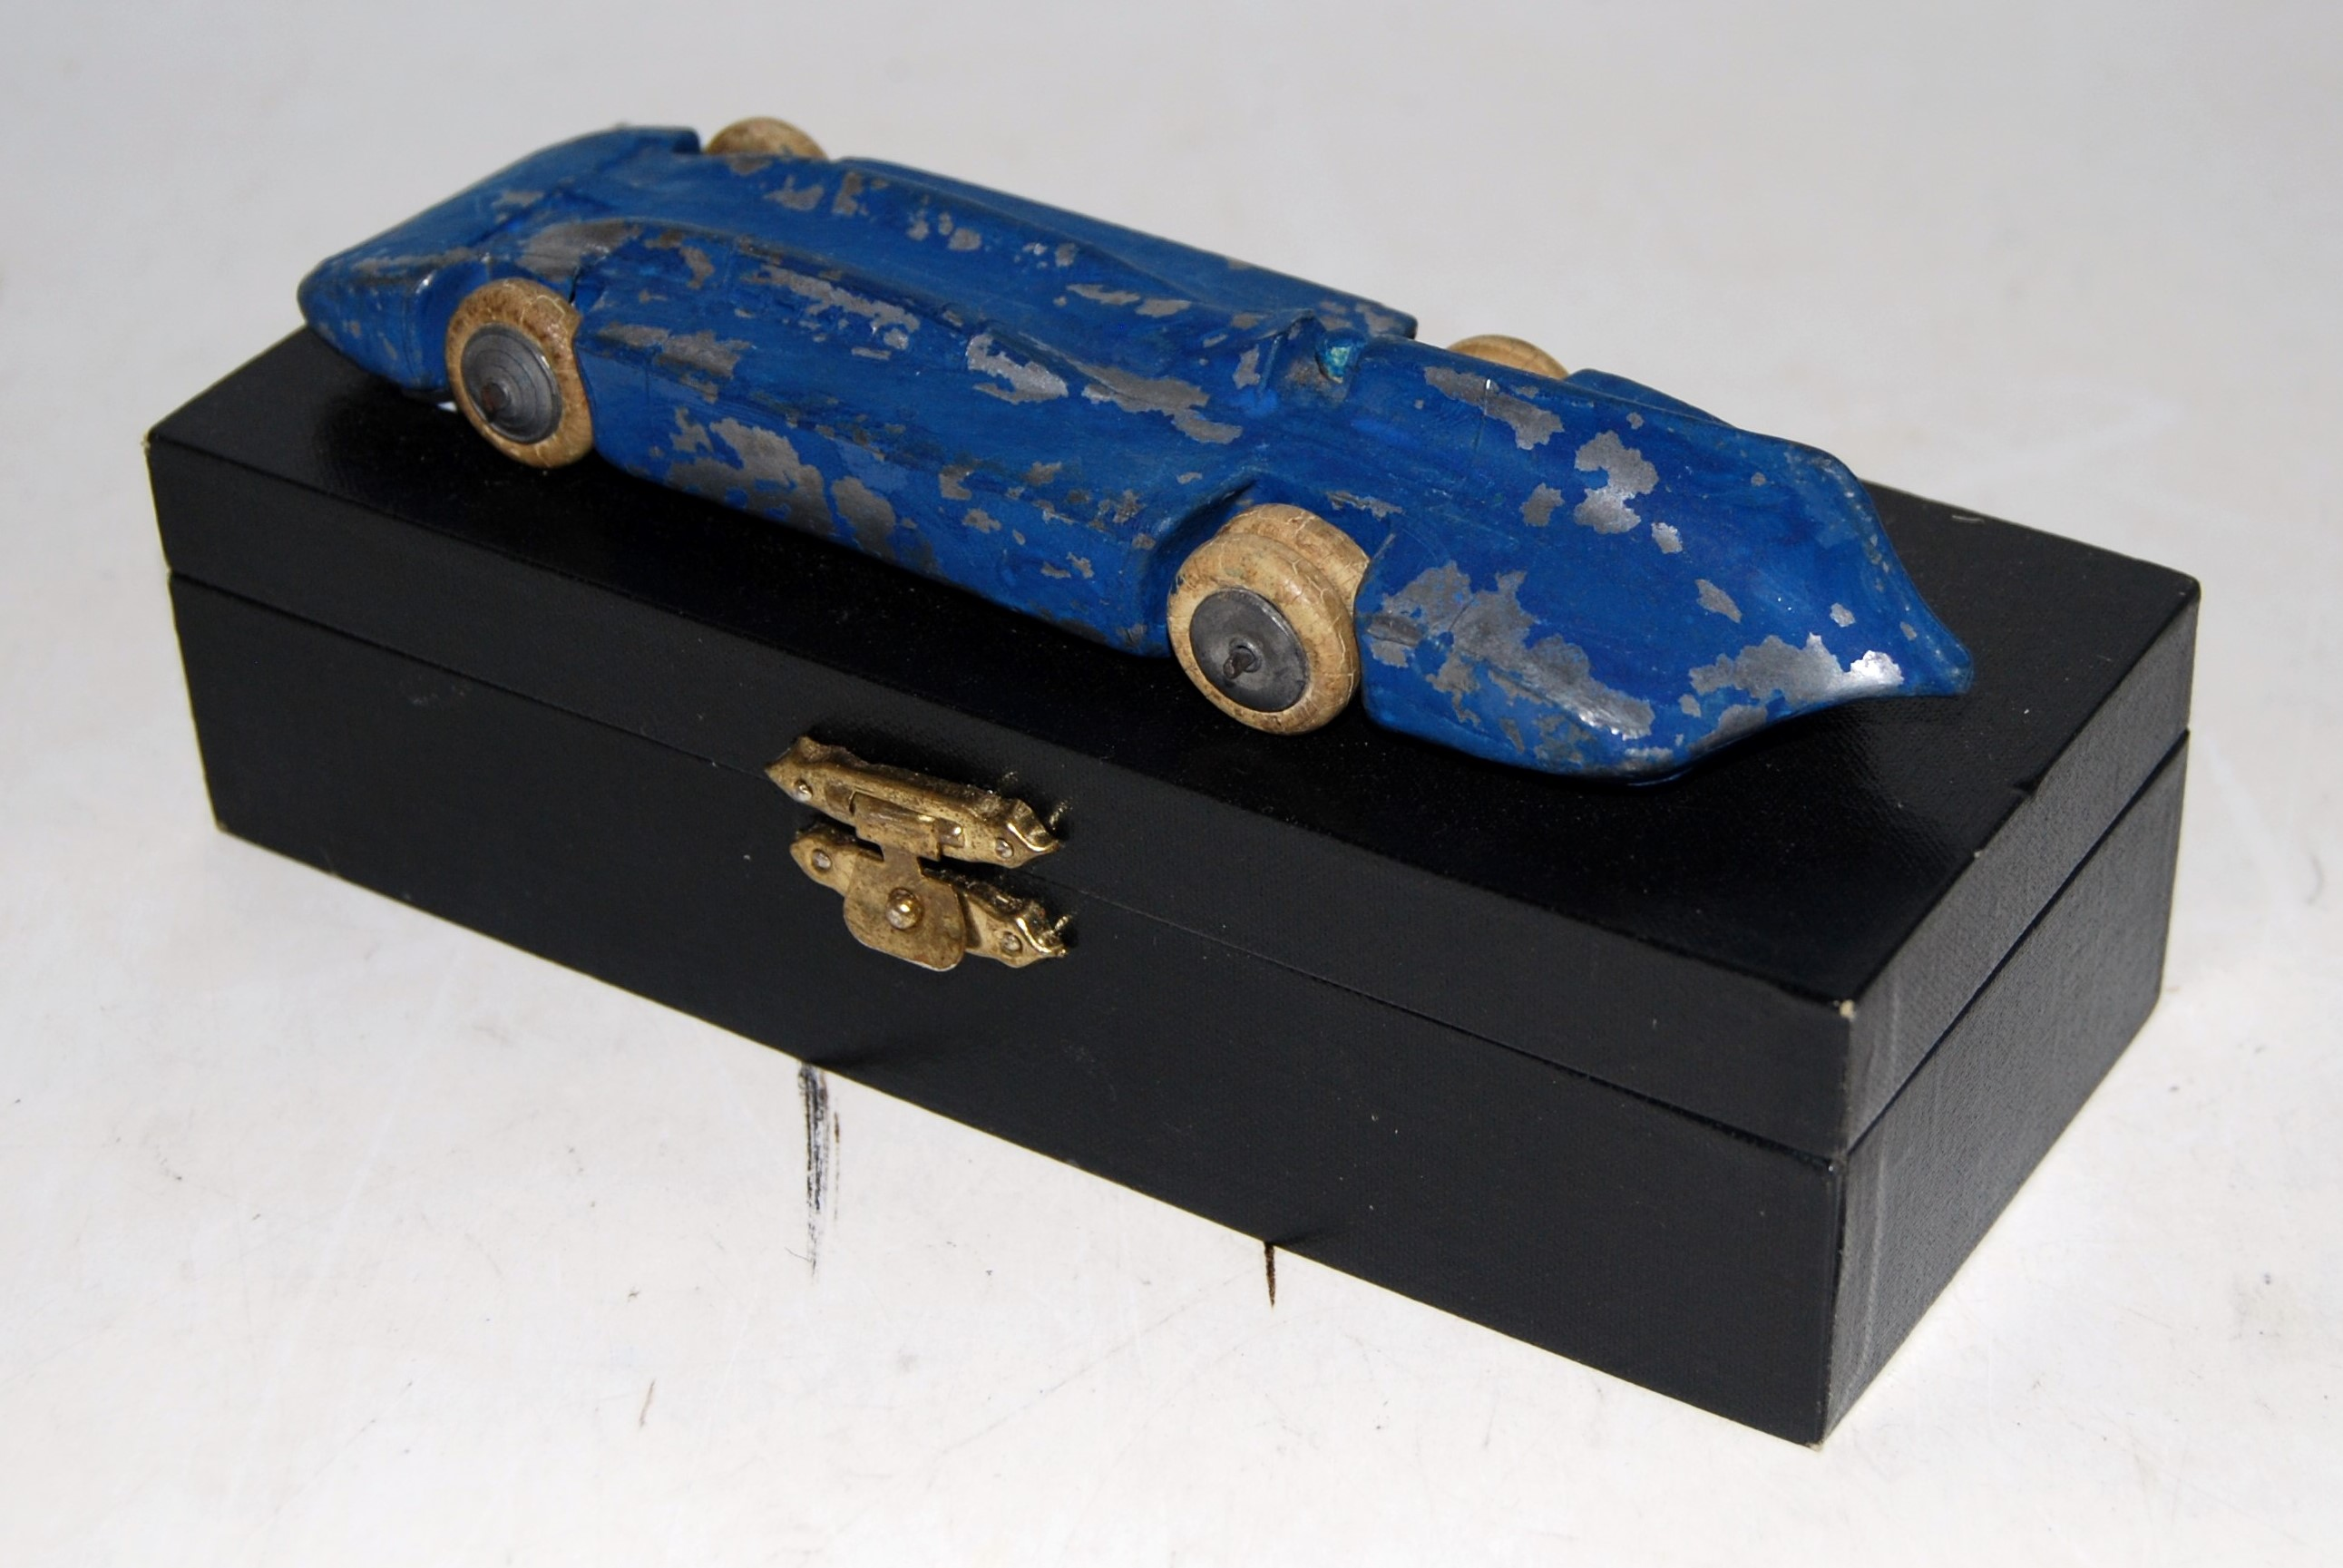 A pre-war No.1400 Britains Bluebird comprising of two piece detachable body and chassis, blue